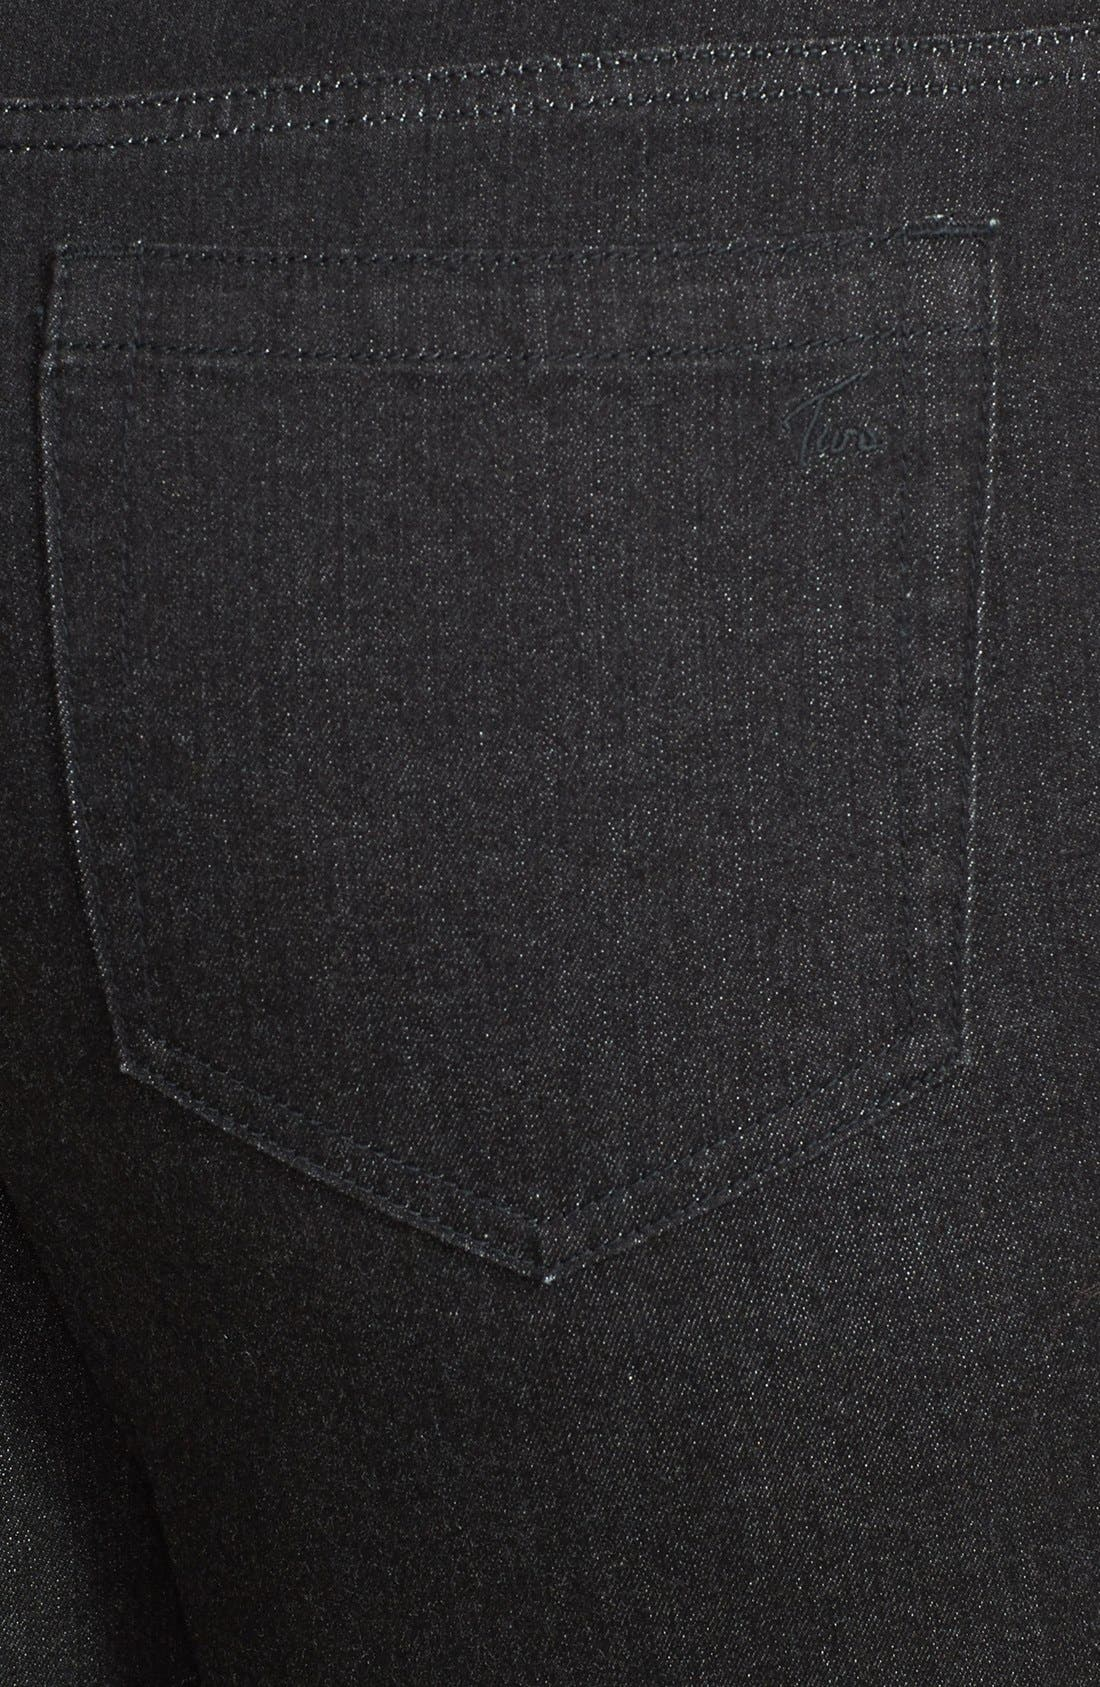 Alternate Image 3  - Two by Vince Camuto Skinny Jeans (Black Denim) (Plus Size)